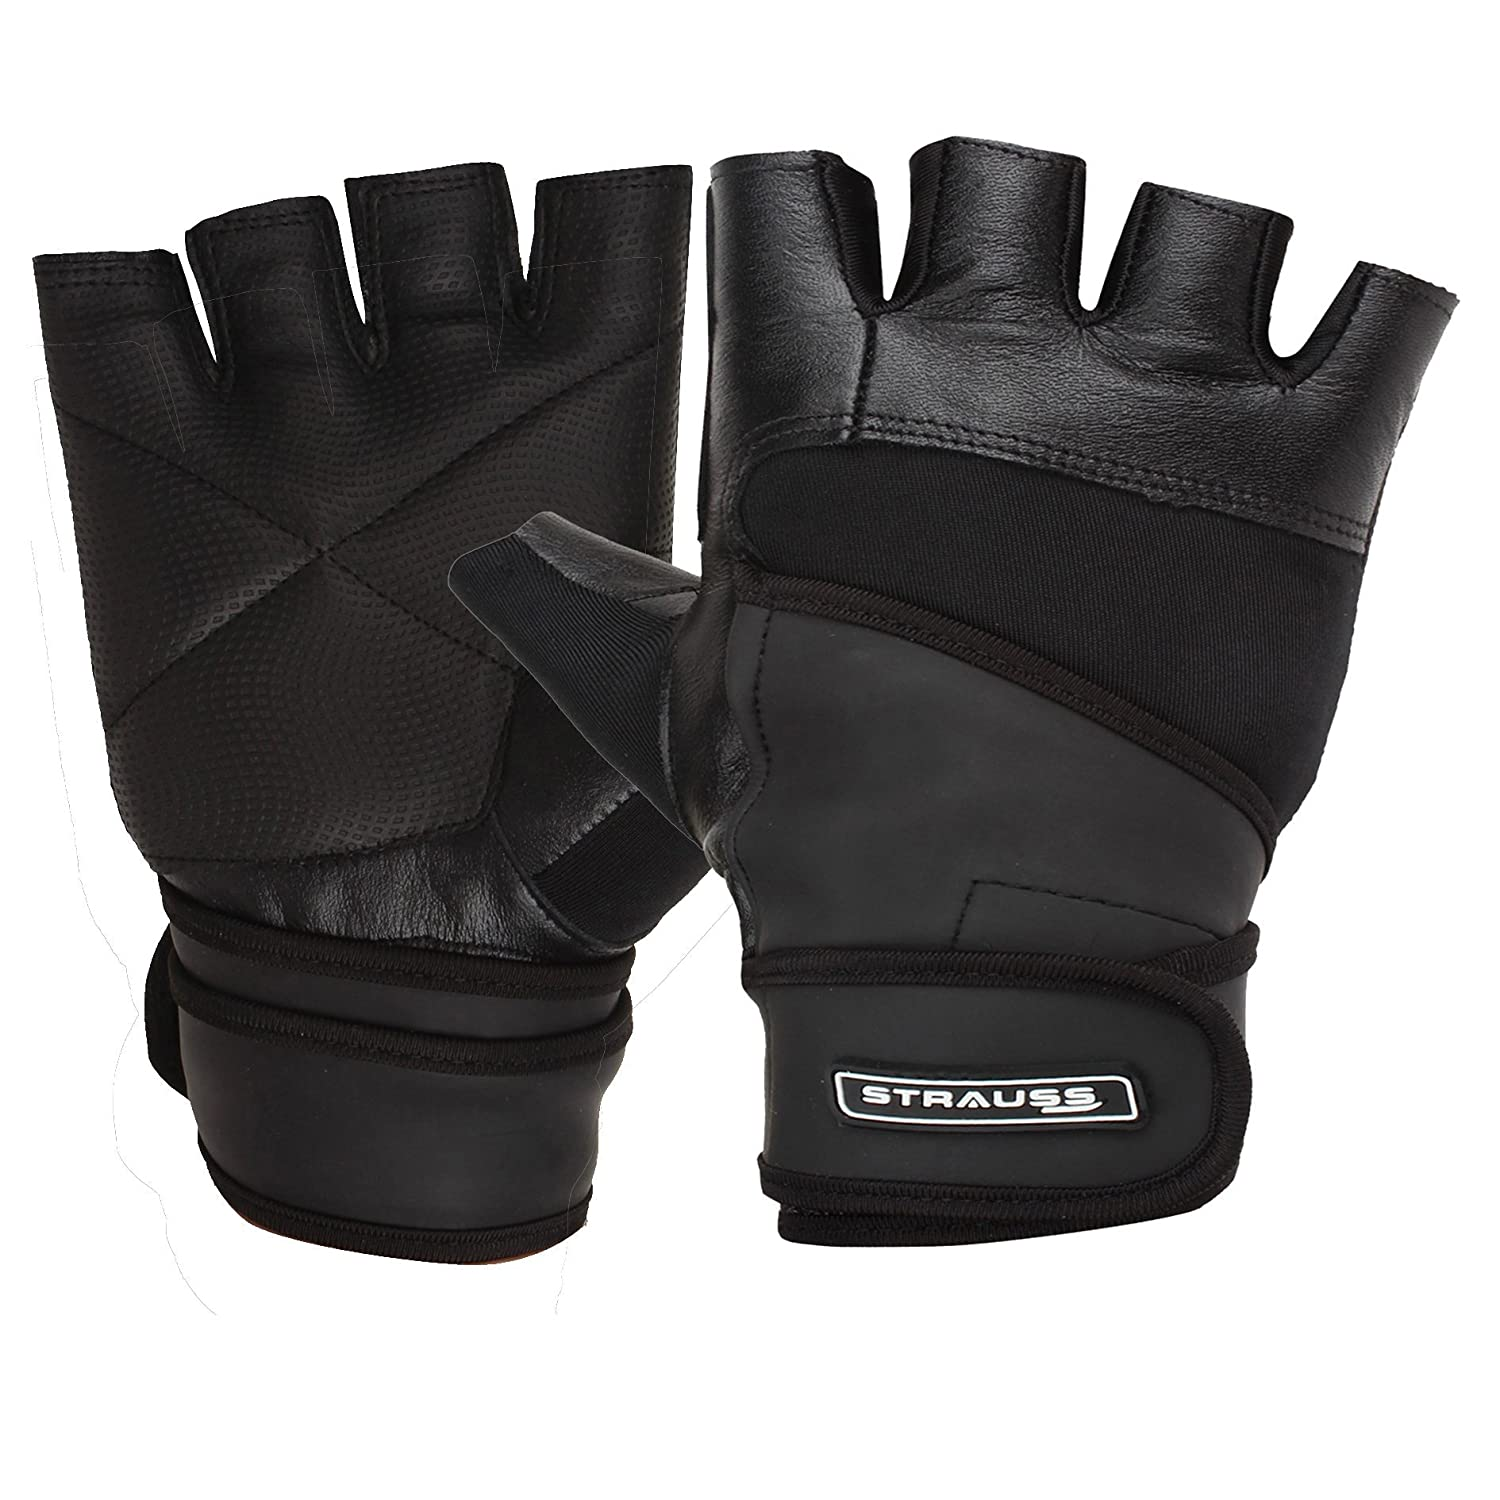 Buy leather hand gloves online india - Strauss Leather Gym Gloves With Wrist Wrap Medium